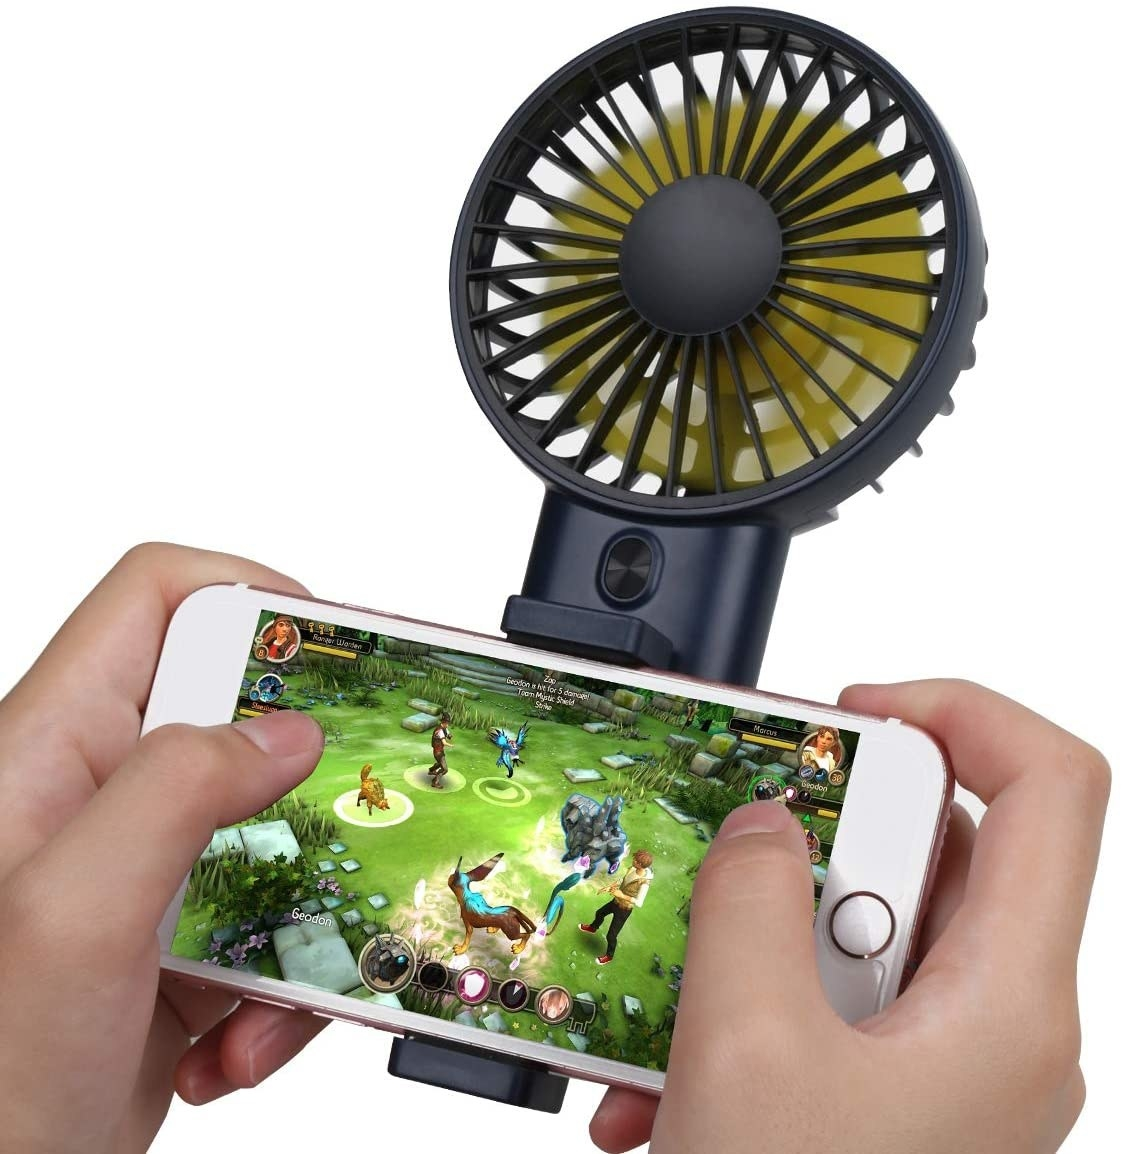 A person playing a game on their phone with the fan attached